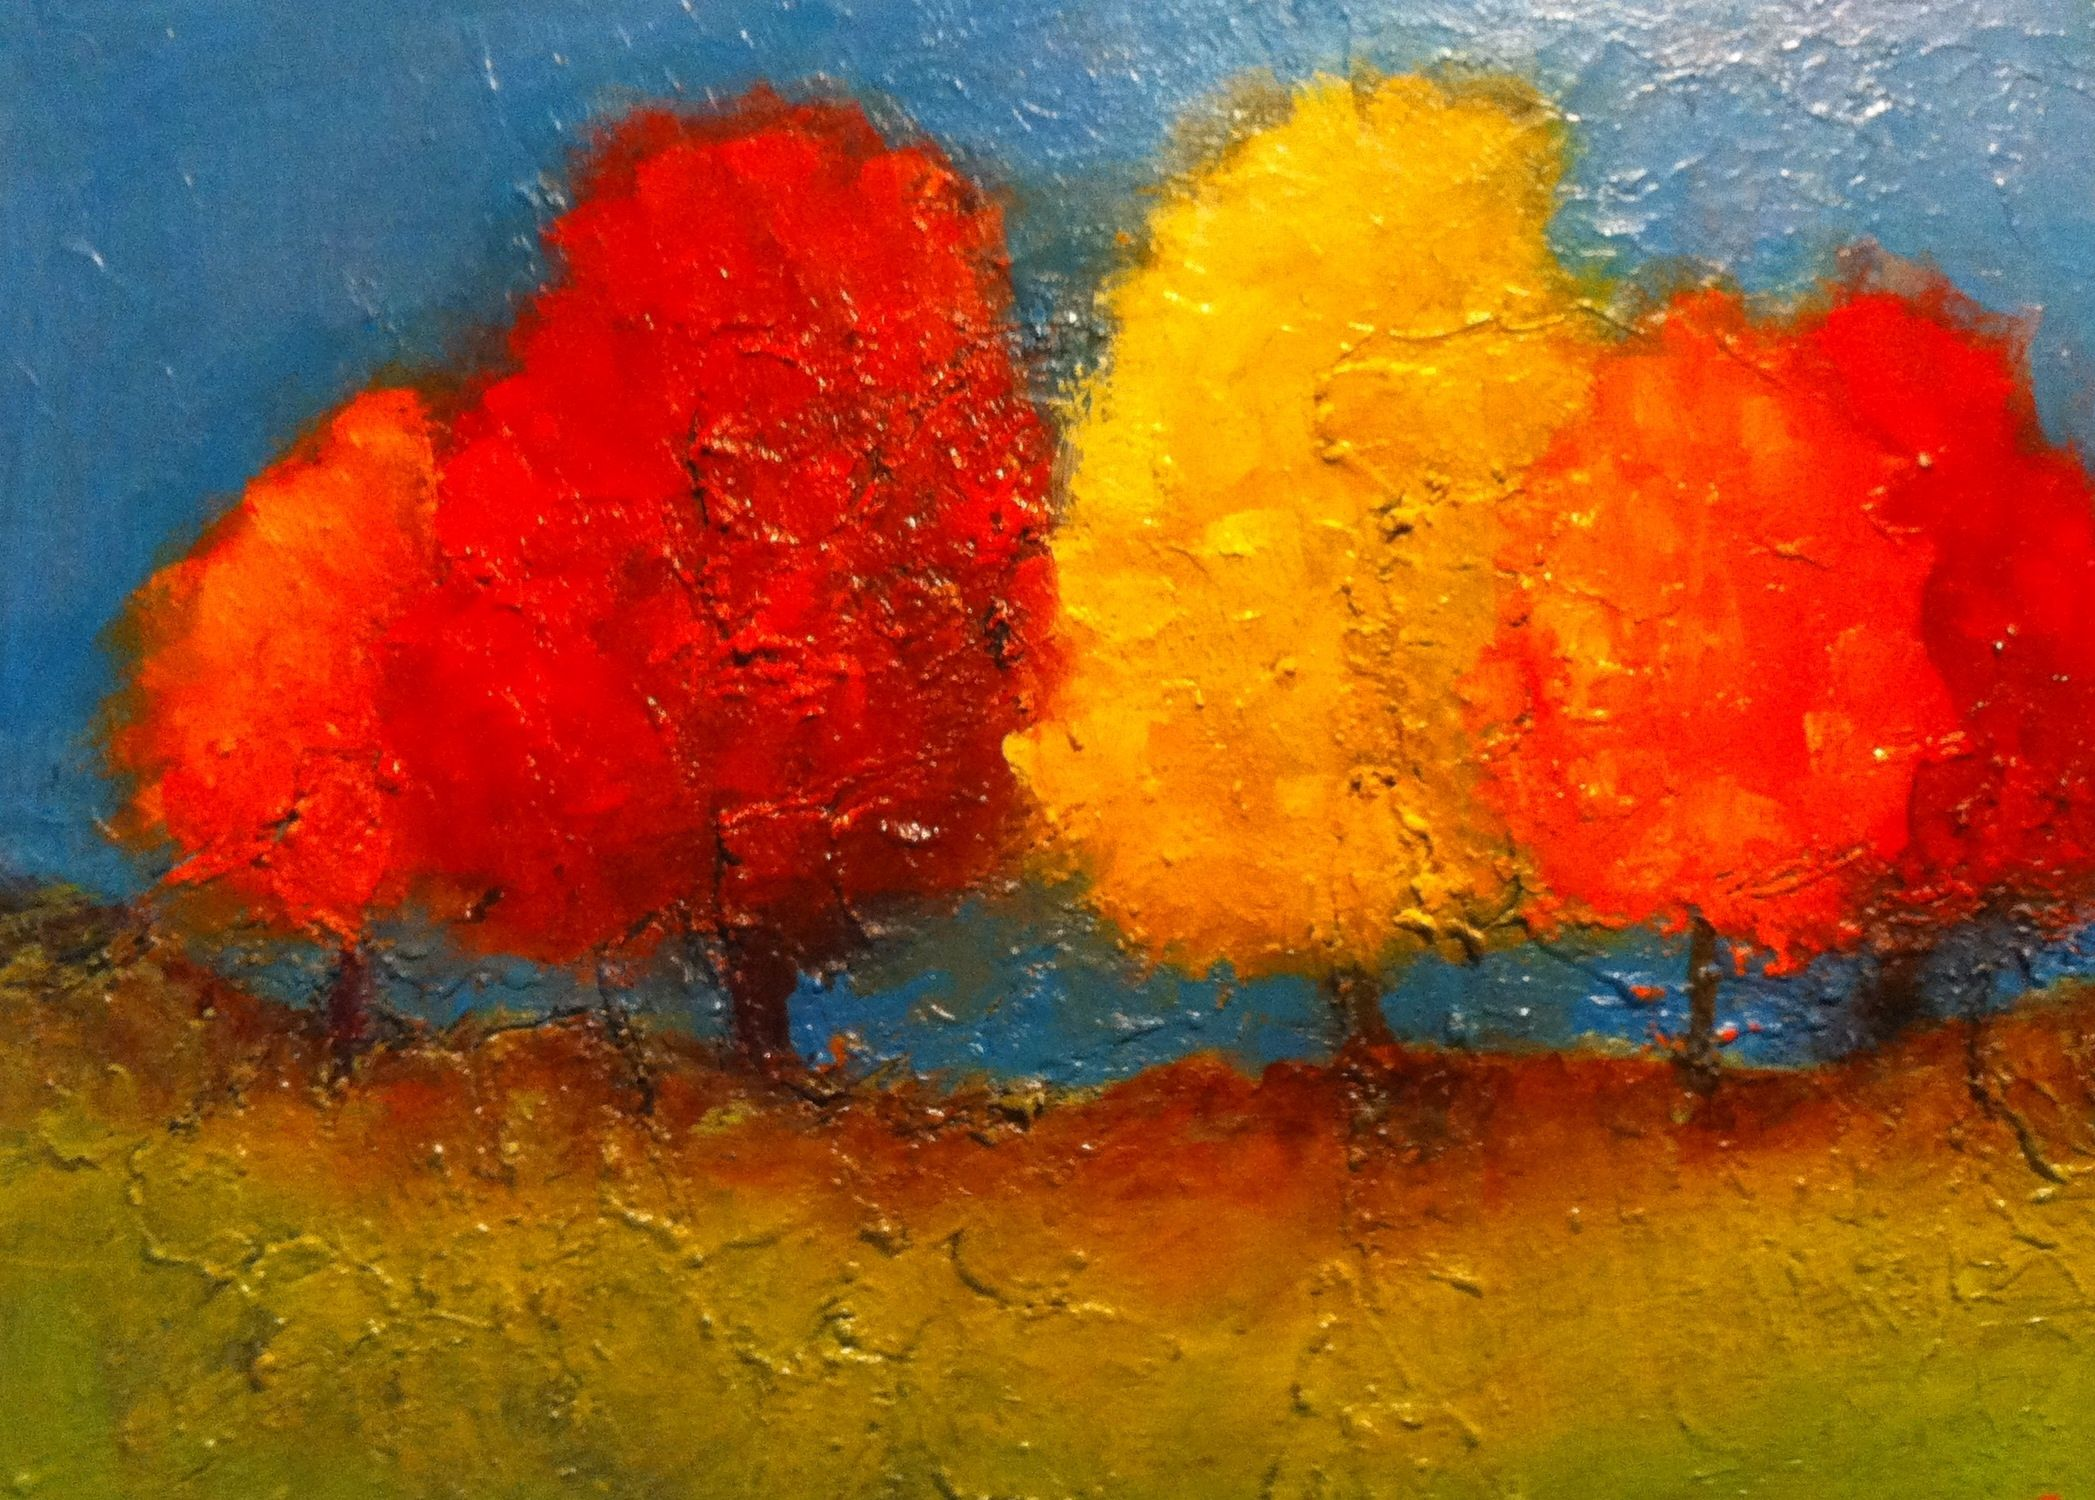 warm colors painting - Google Search | Warm color | Pinterest ...